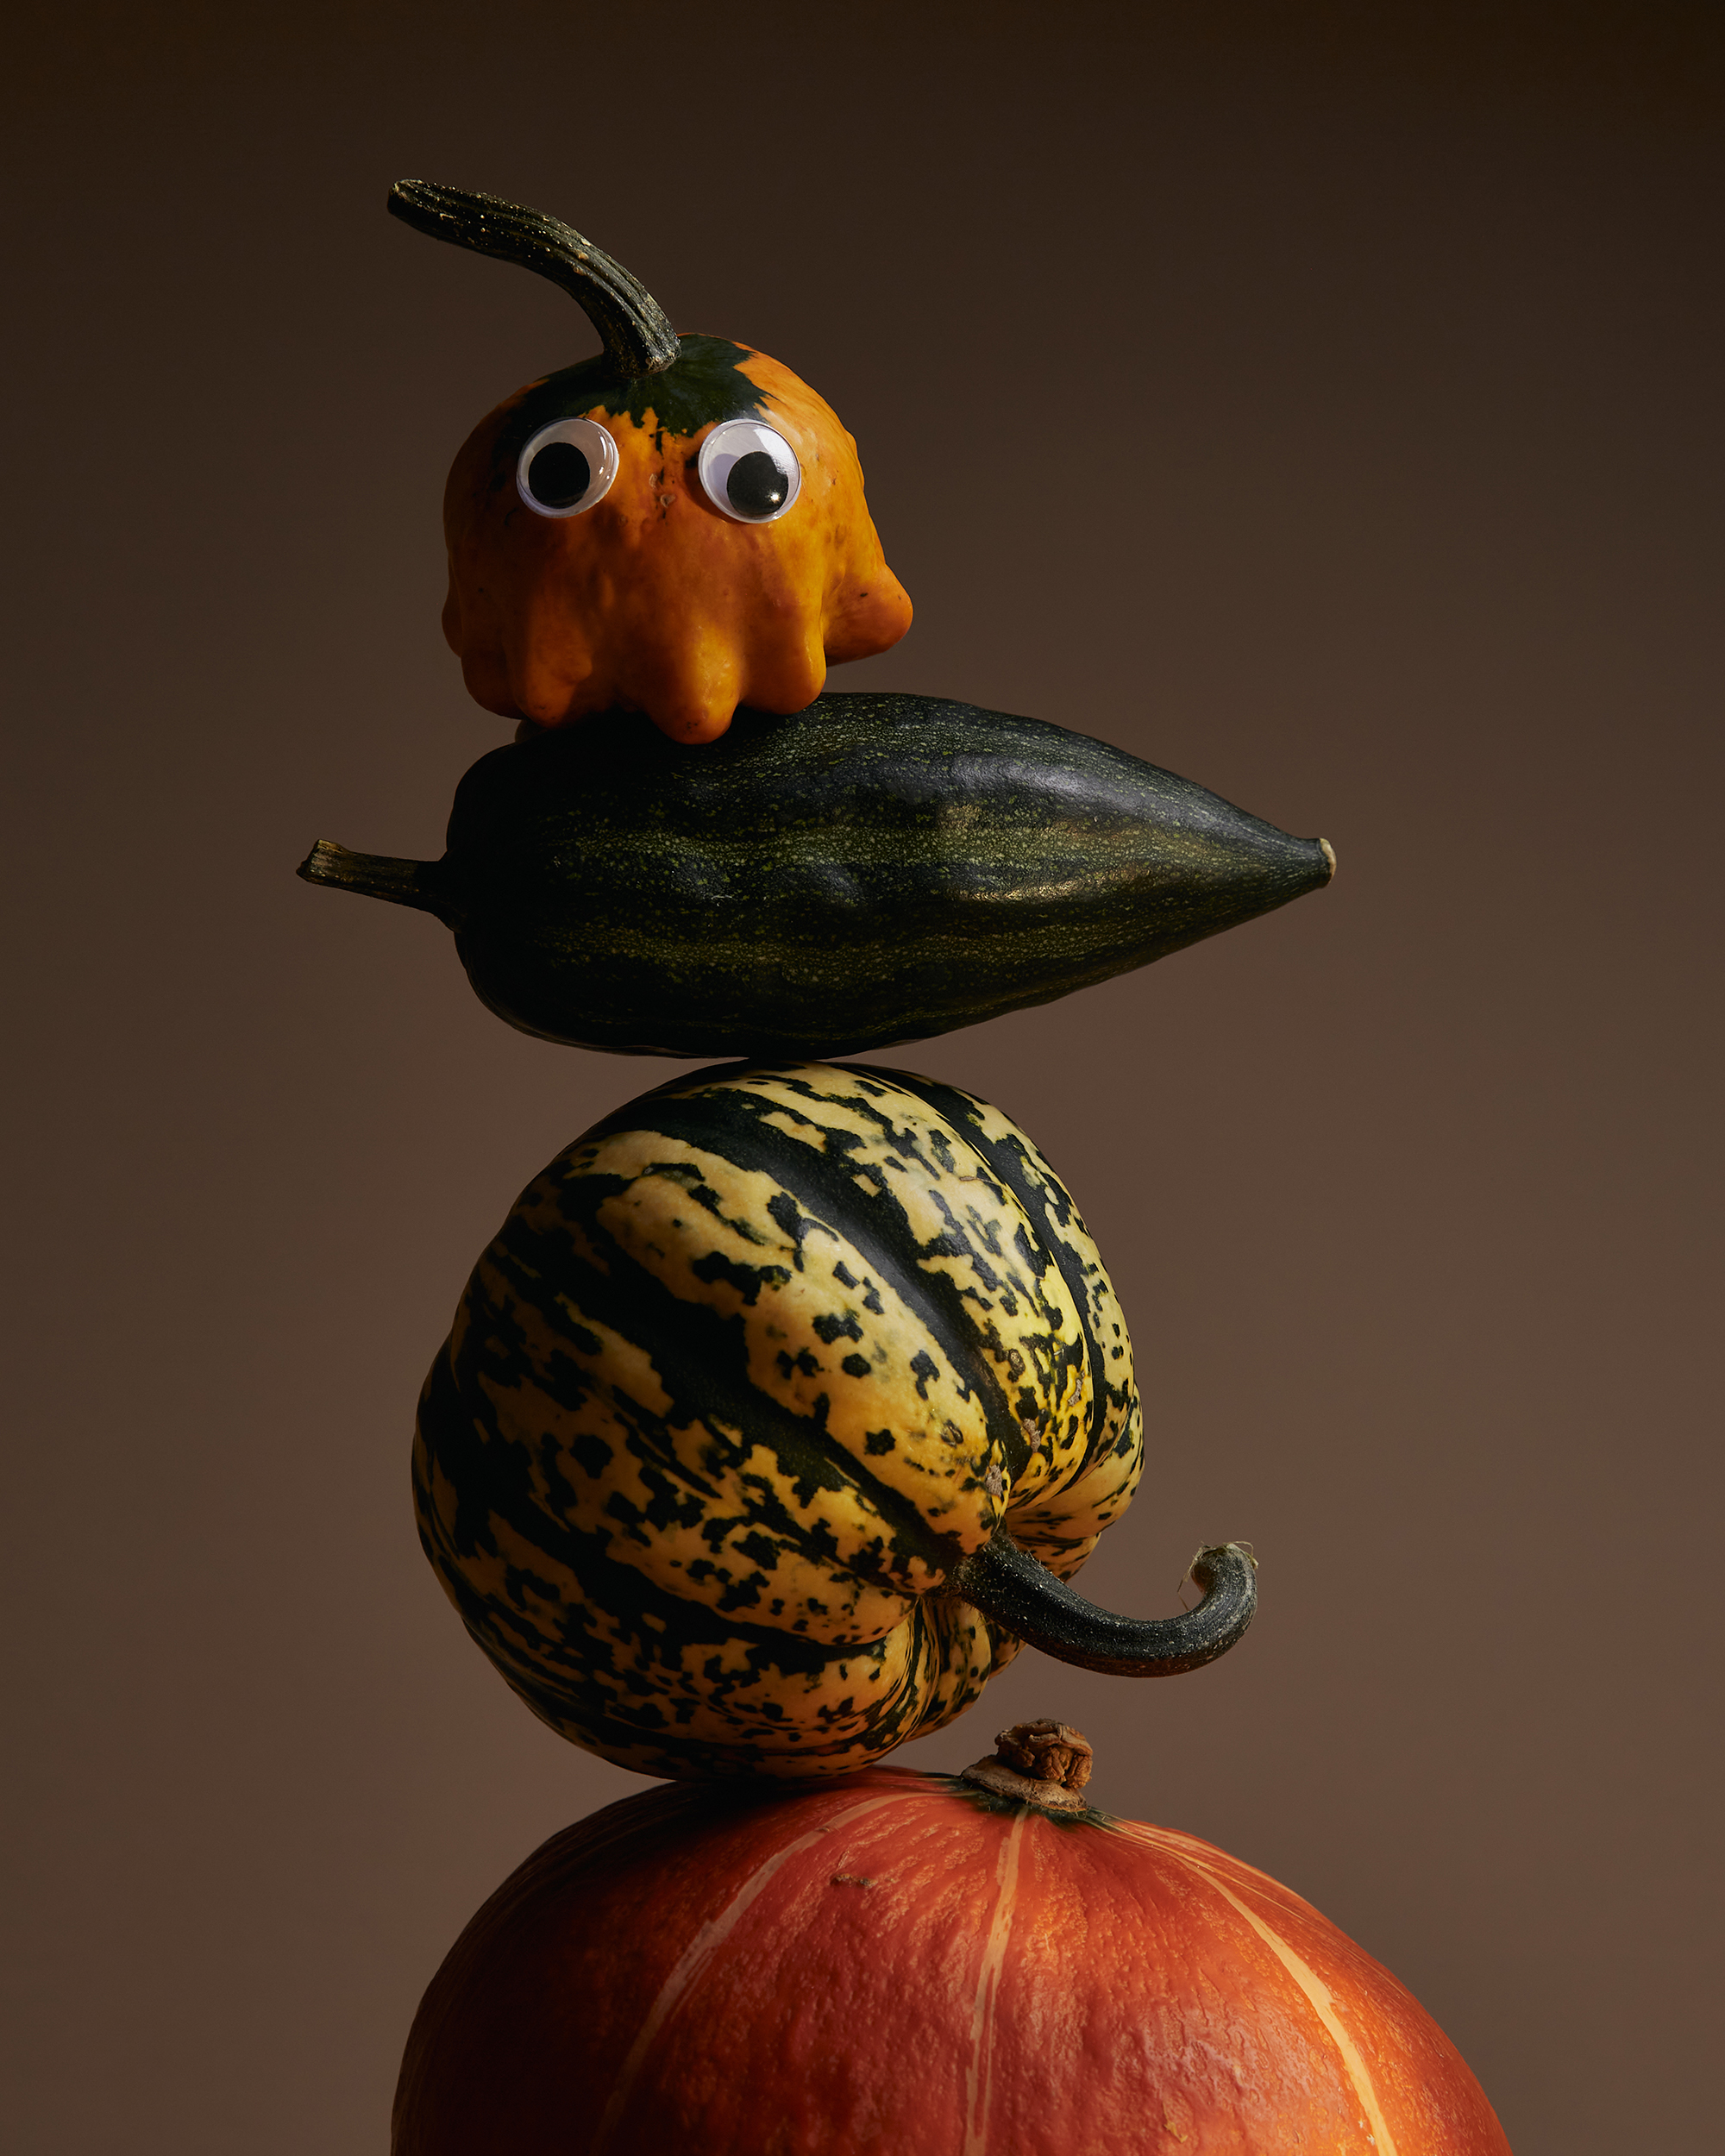 Rikki_Ward_Photographer_GOURDS_1